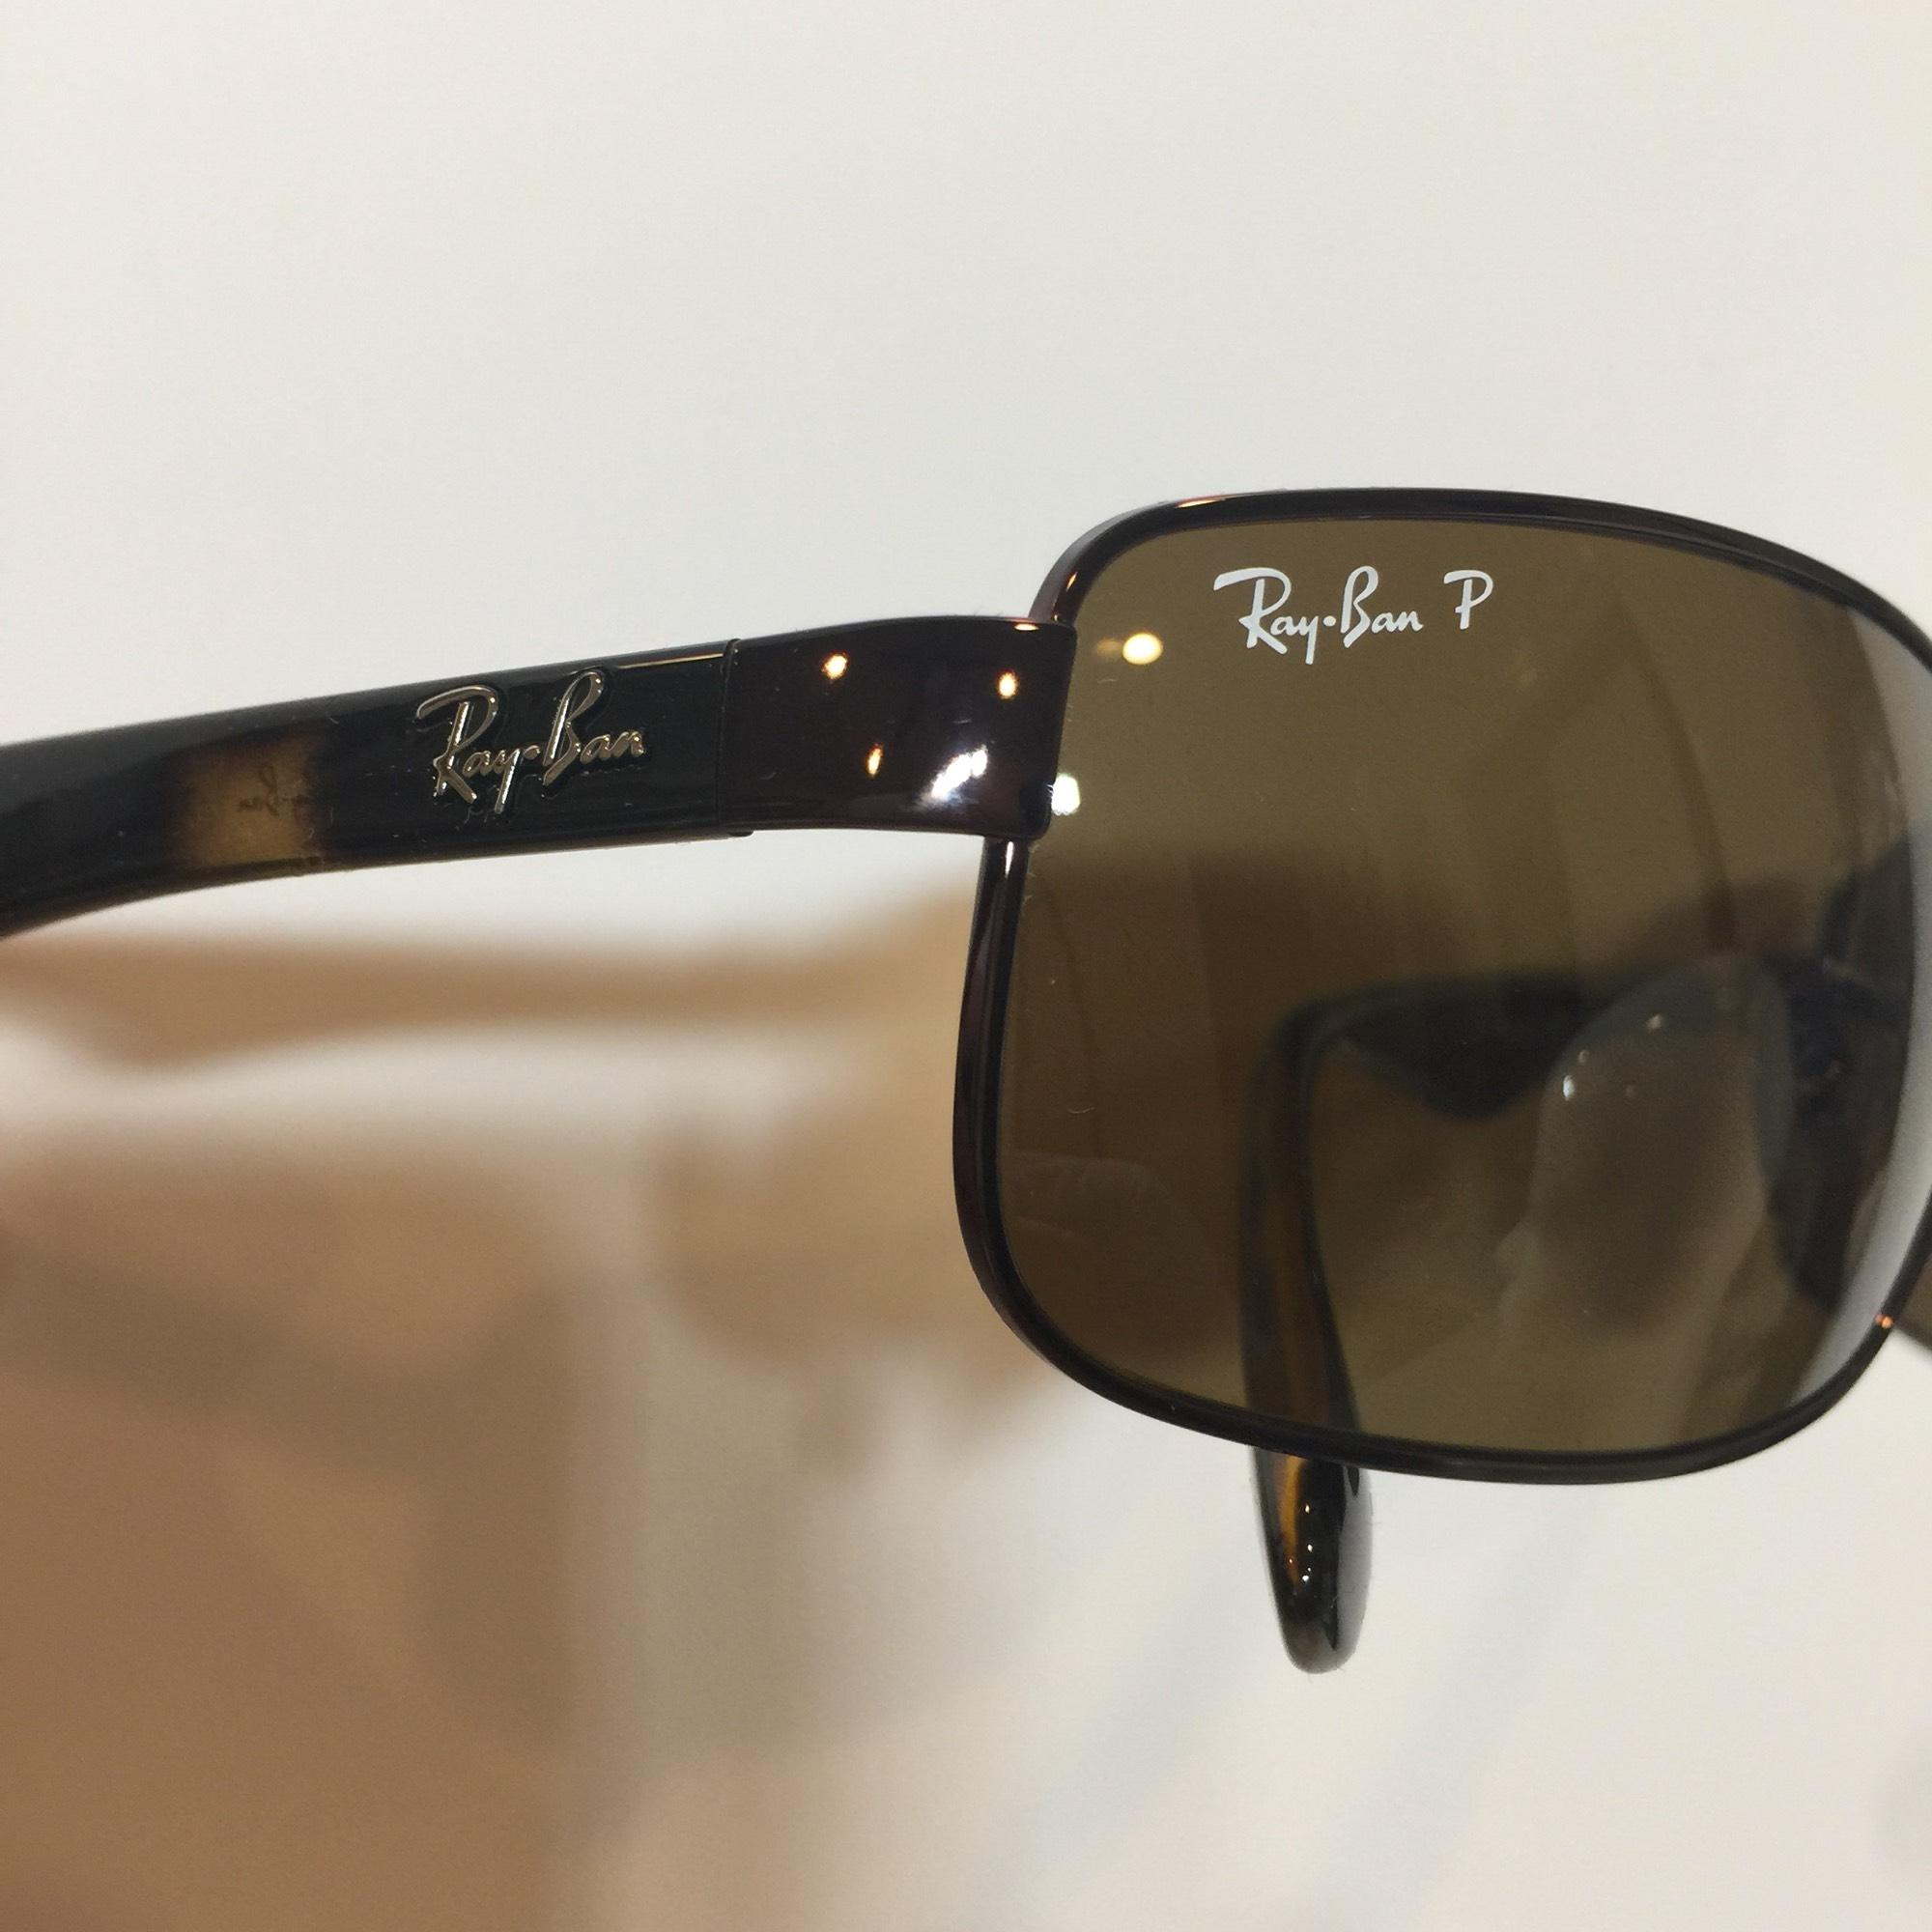 99bf6f63b53 ... discount code for ray ban brown rb 3478 014 57 wraparound metal  polarized 60mm 9335a 6c6db